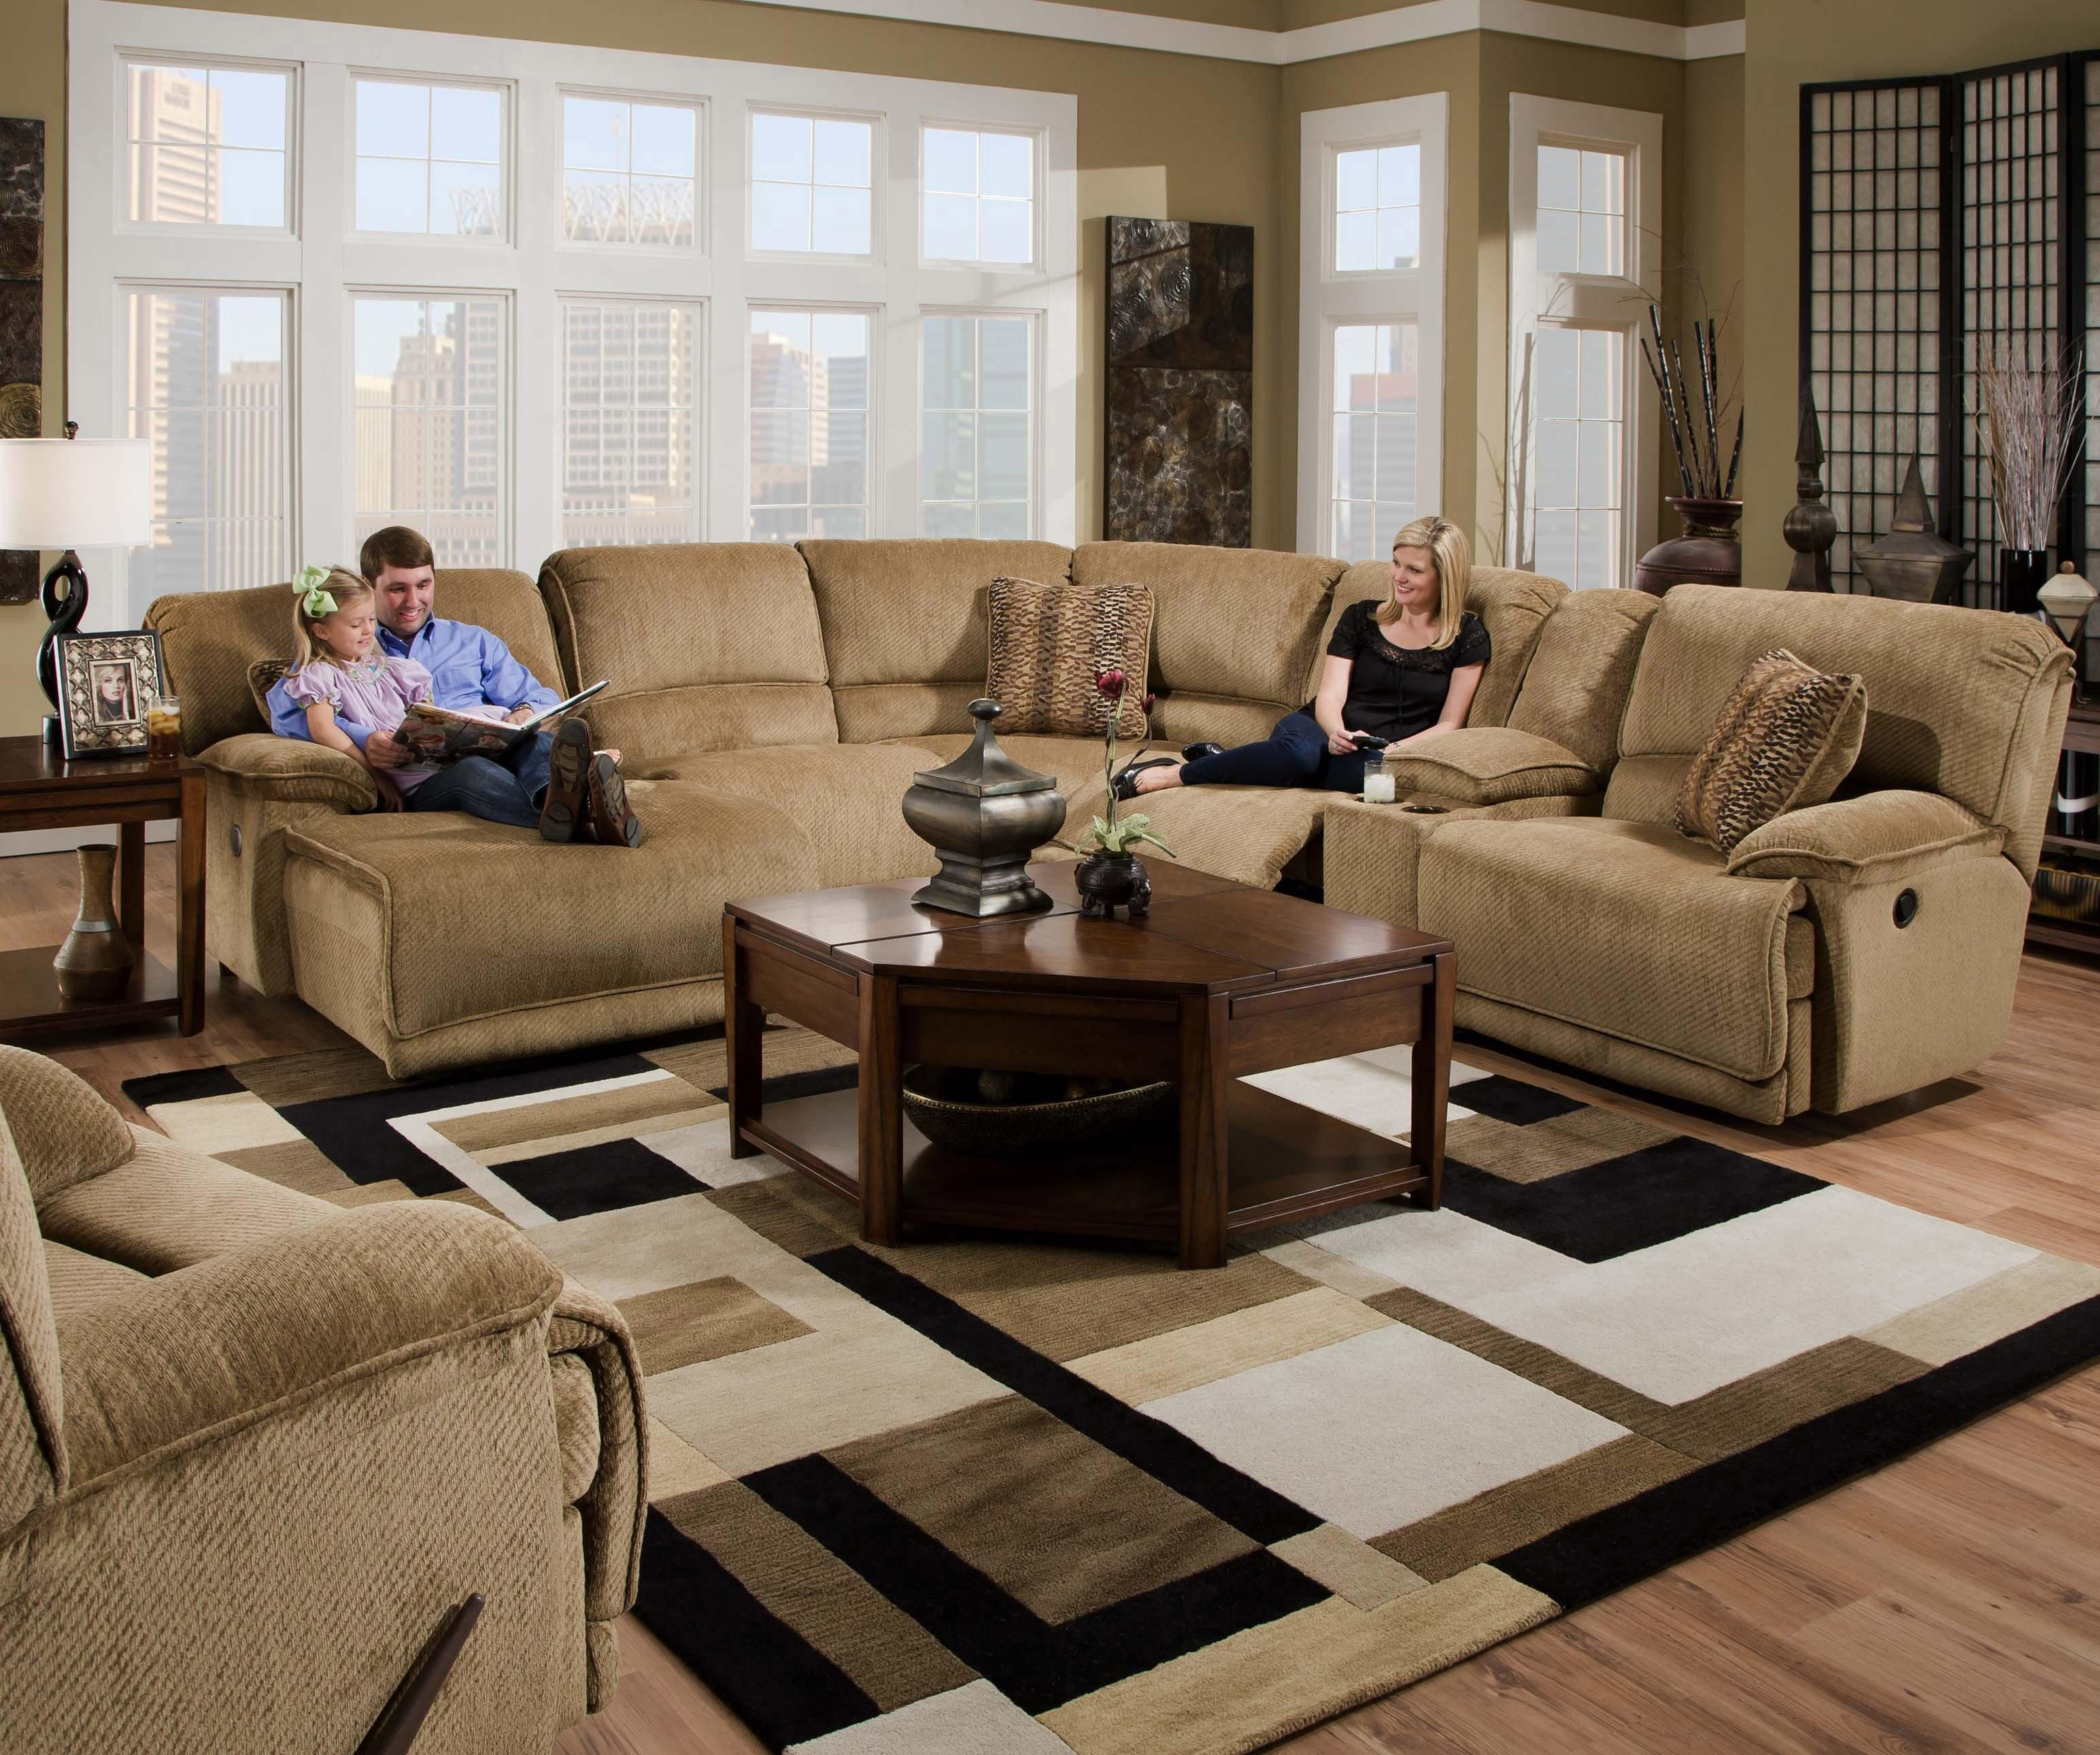 Grandover Five Person Sectional With Reclining Left Side